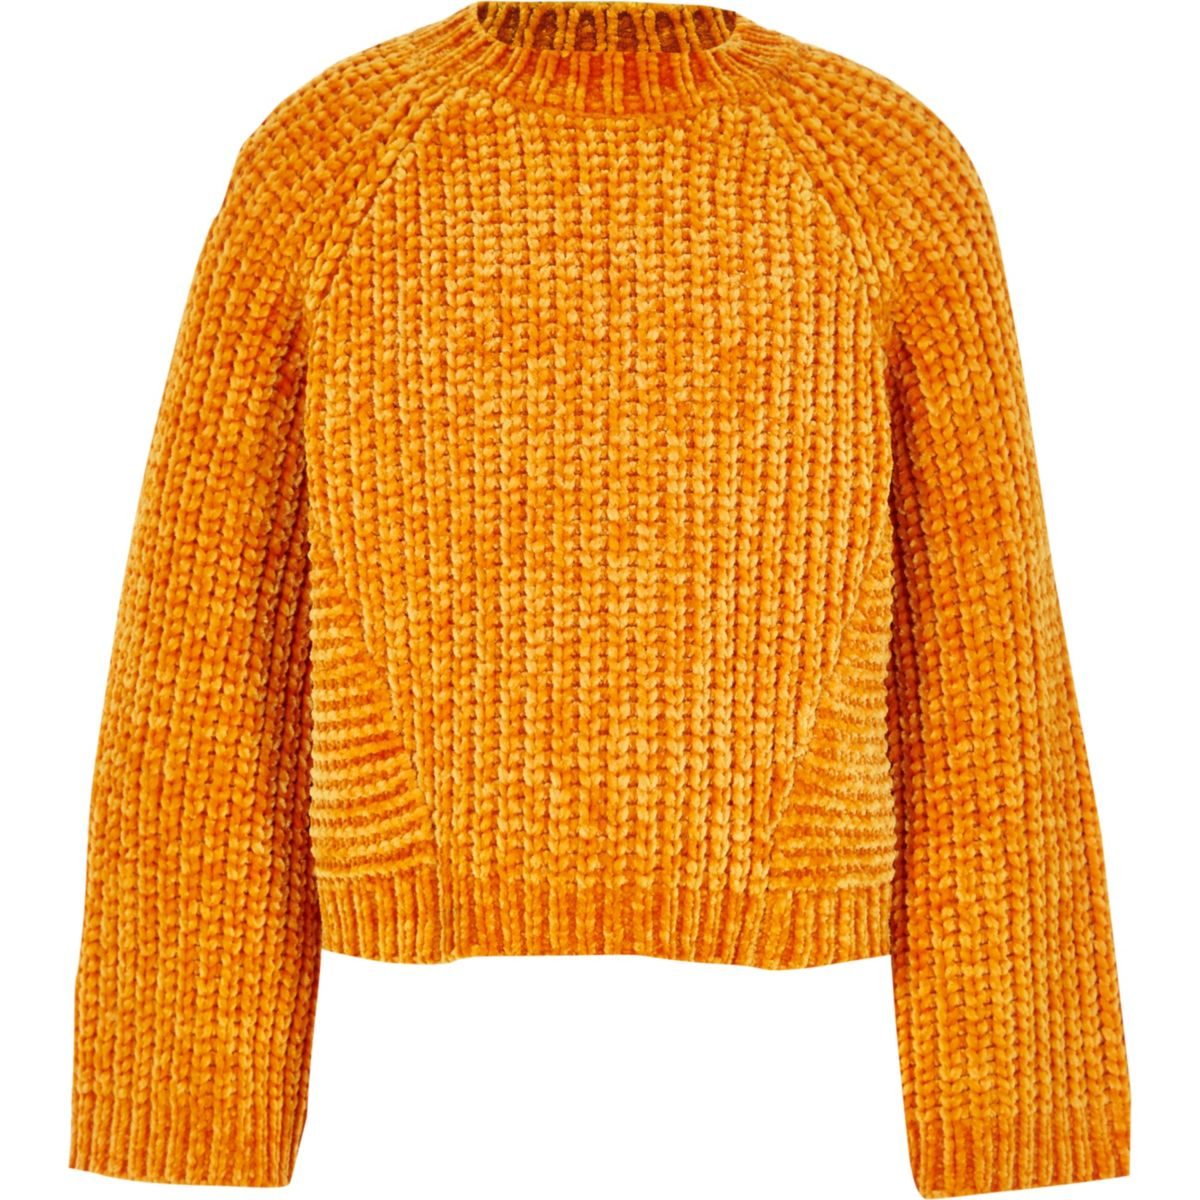 Girls orange chenille knit sweater